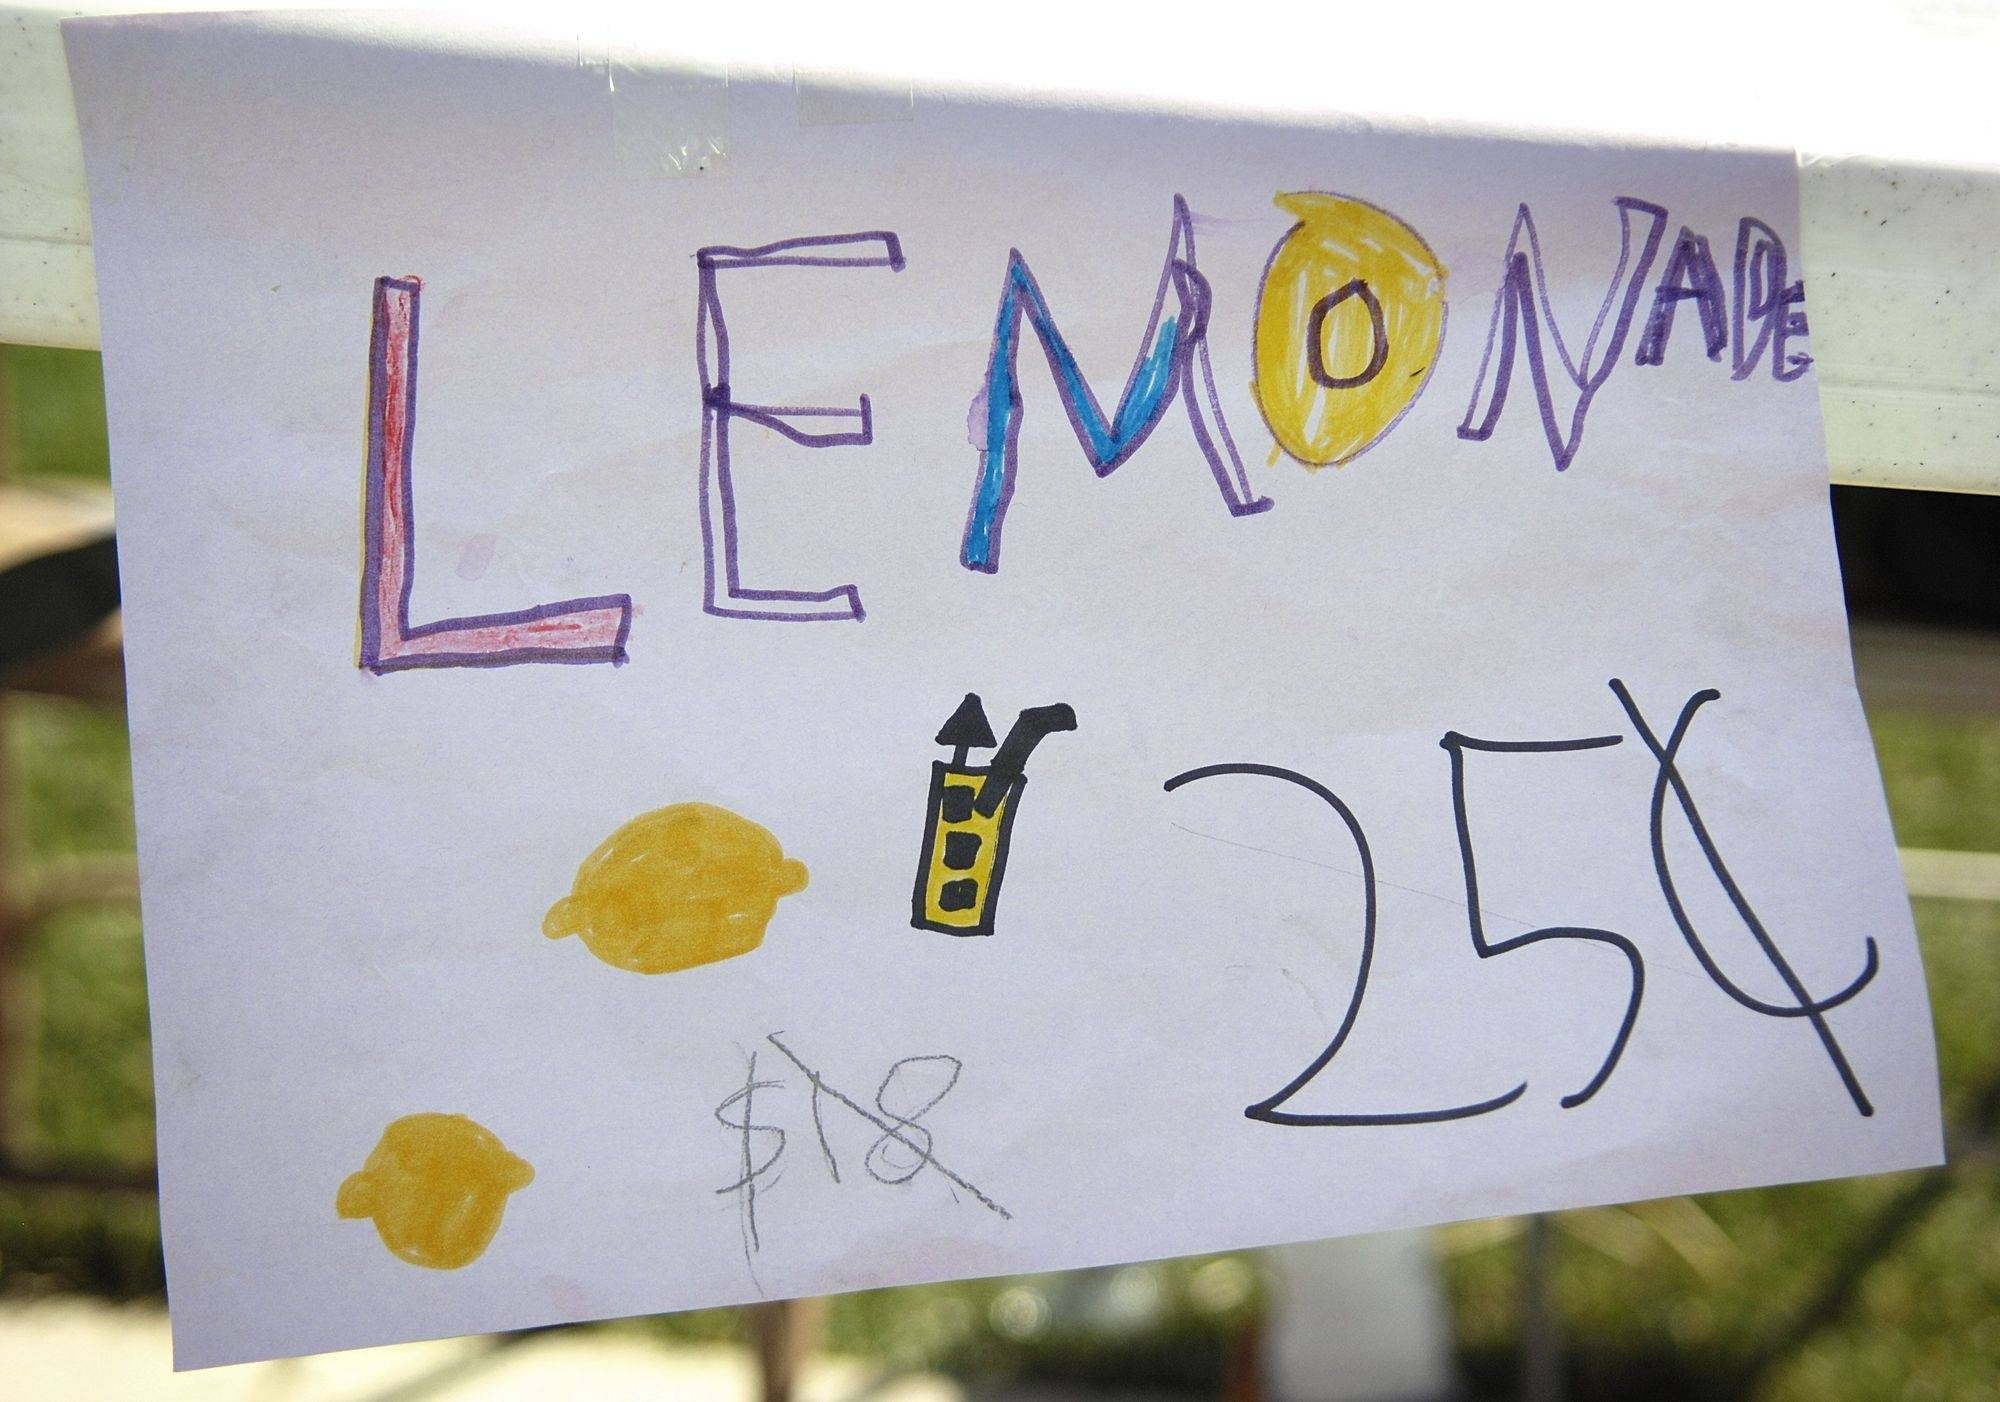 A slightly askew sign for lemonade hangs from Mason Micka's stand on Stoffa Avenue in Elburn Wednesday. The drink was available for a bargain price of 25 cents, down from $18, according to the sign. Mason's good sense of humor brought in $7.05.